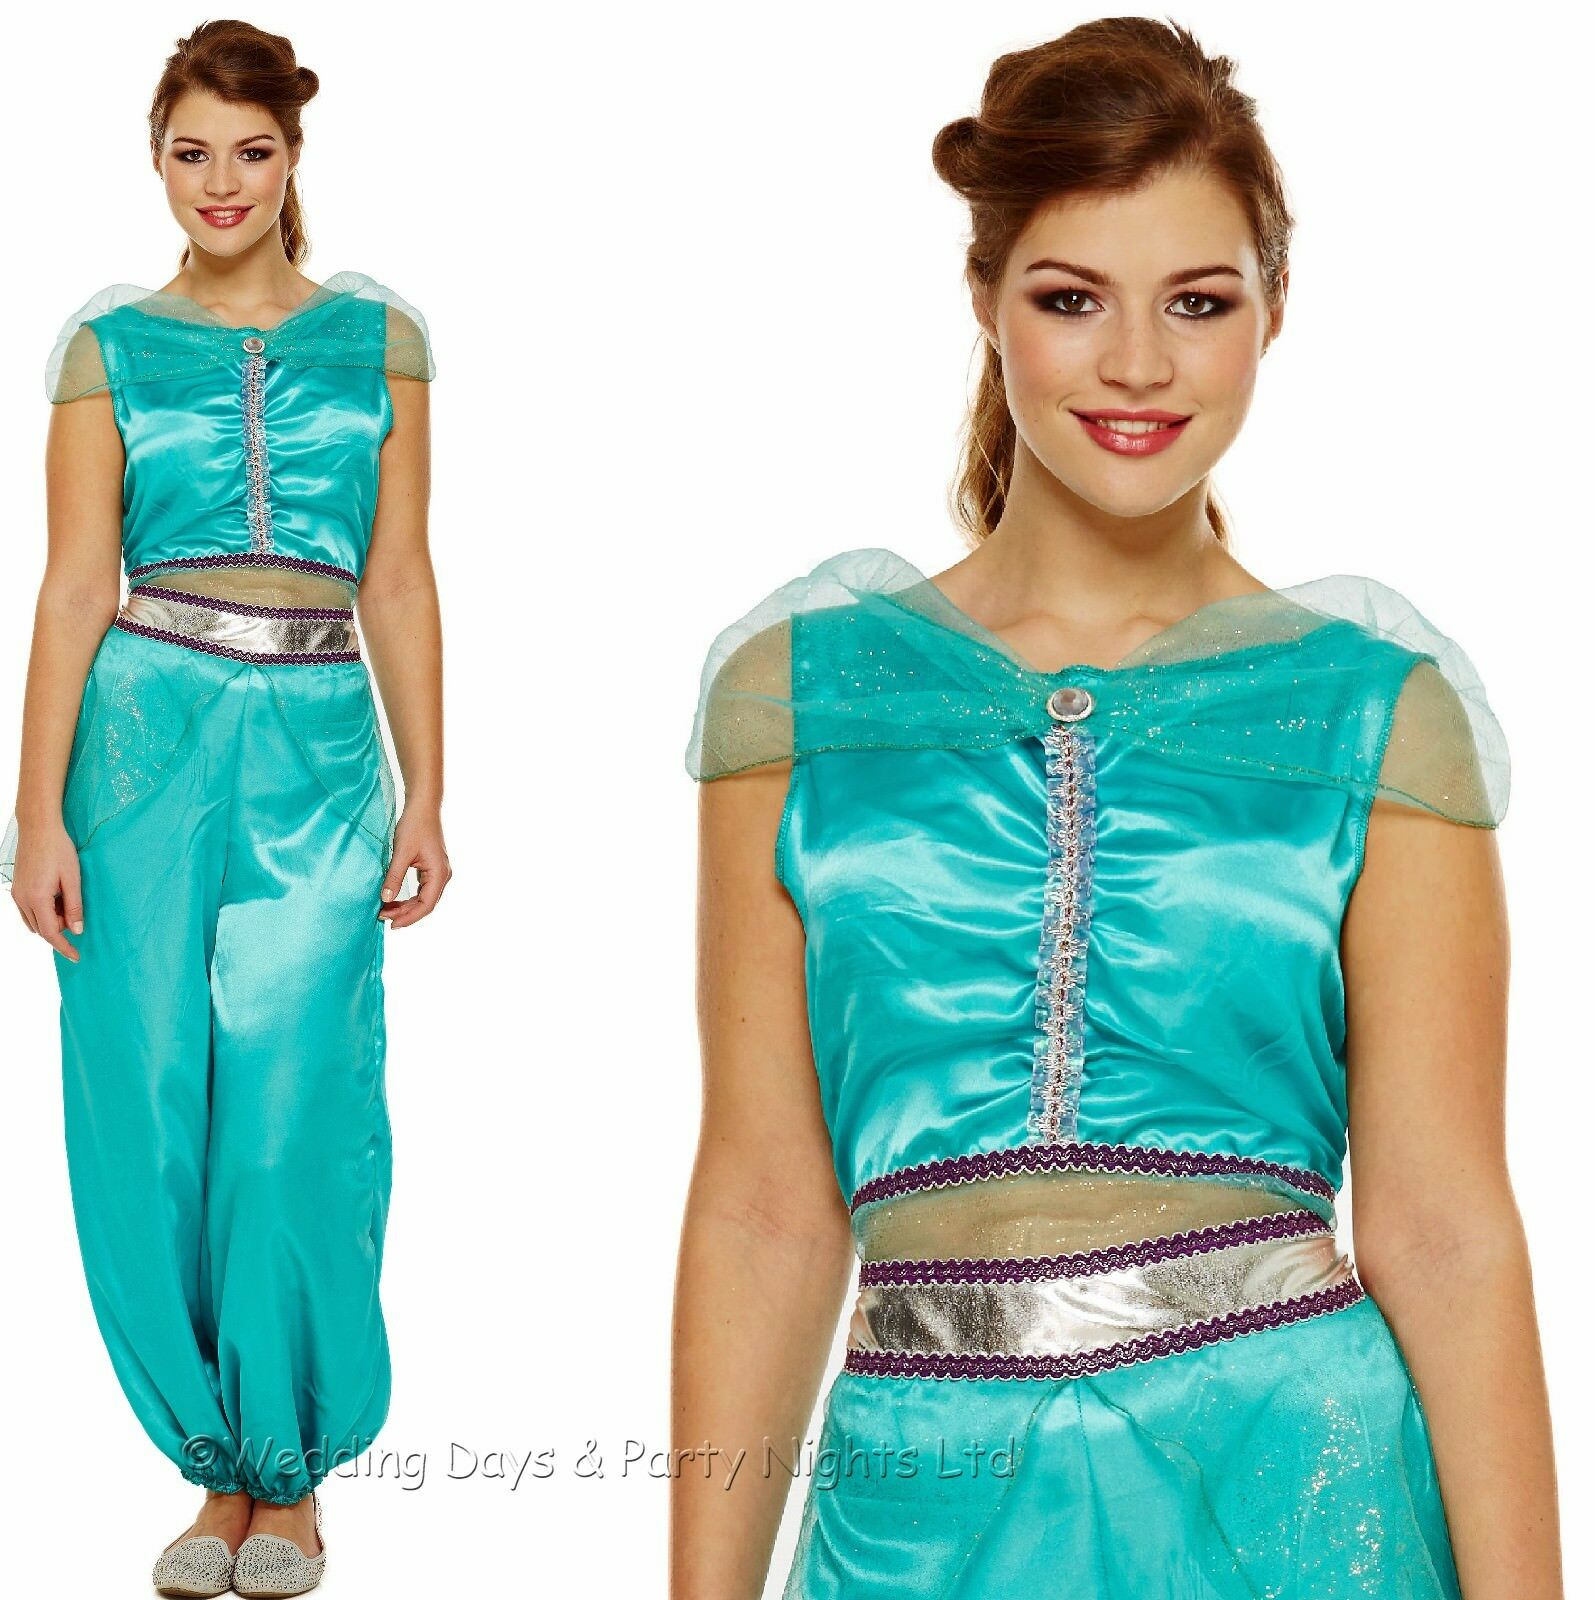 8/10/12 ARABIAN PRINCESS Costume Genie Belly Dancer Fairytale Ladies ...